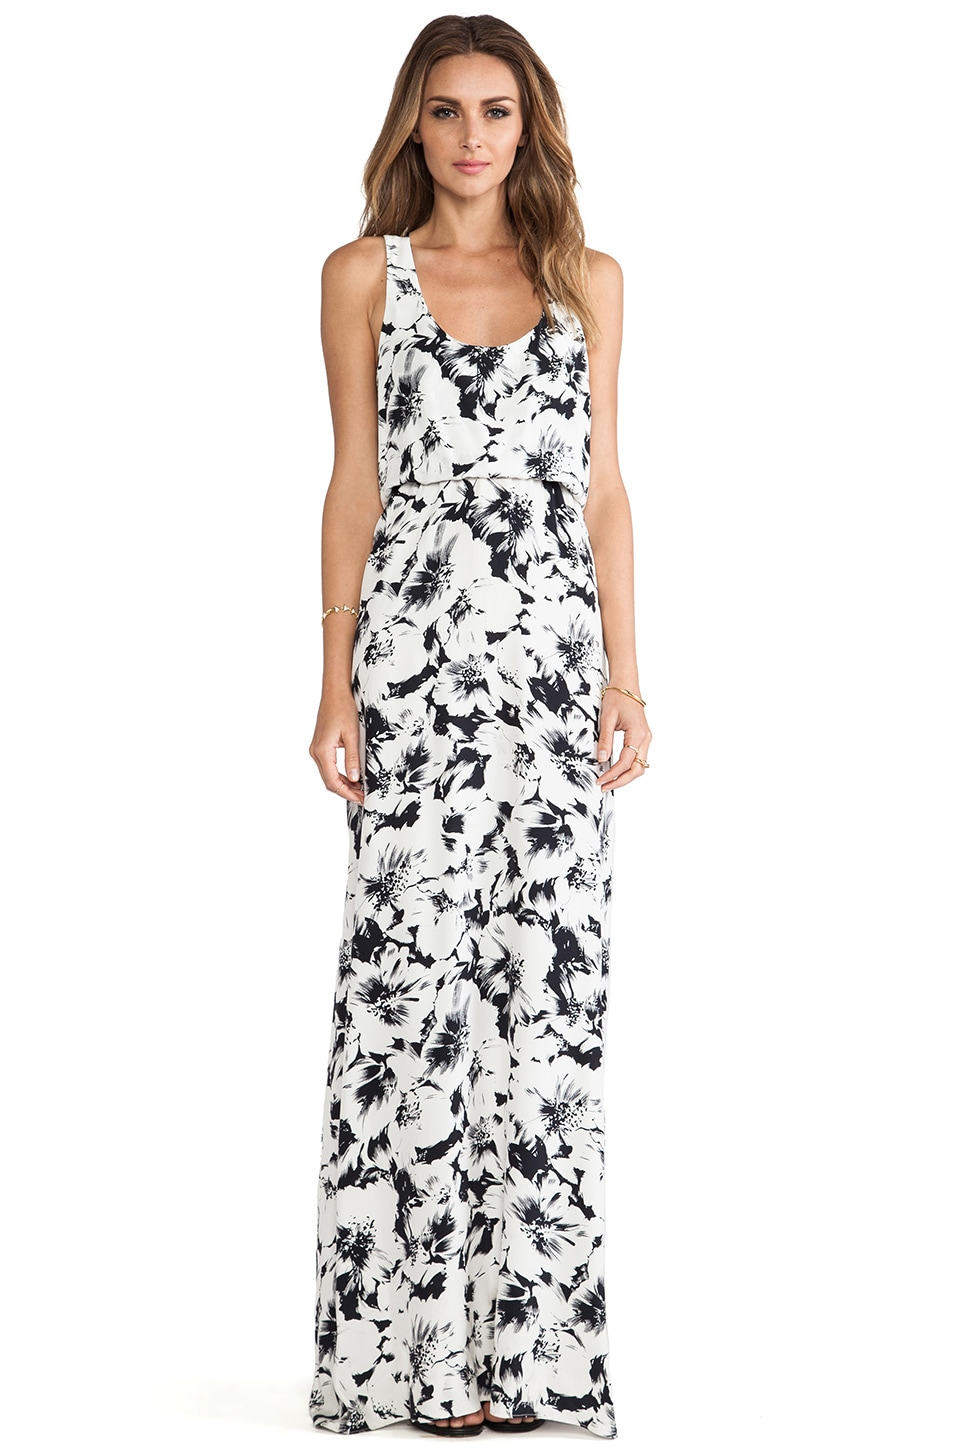 Parker Cassie Dress in Black Magnolia